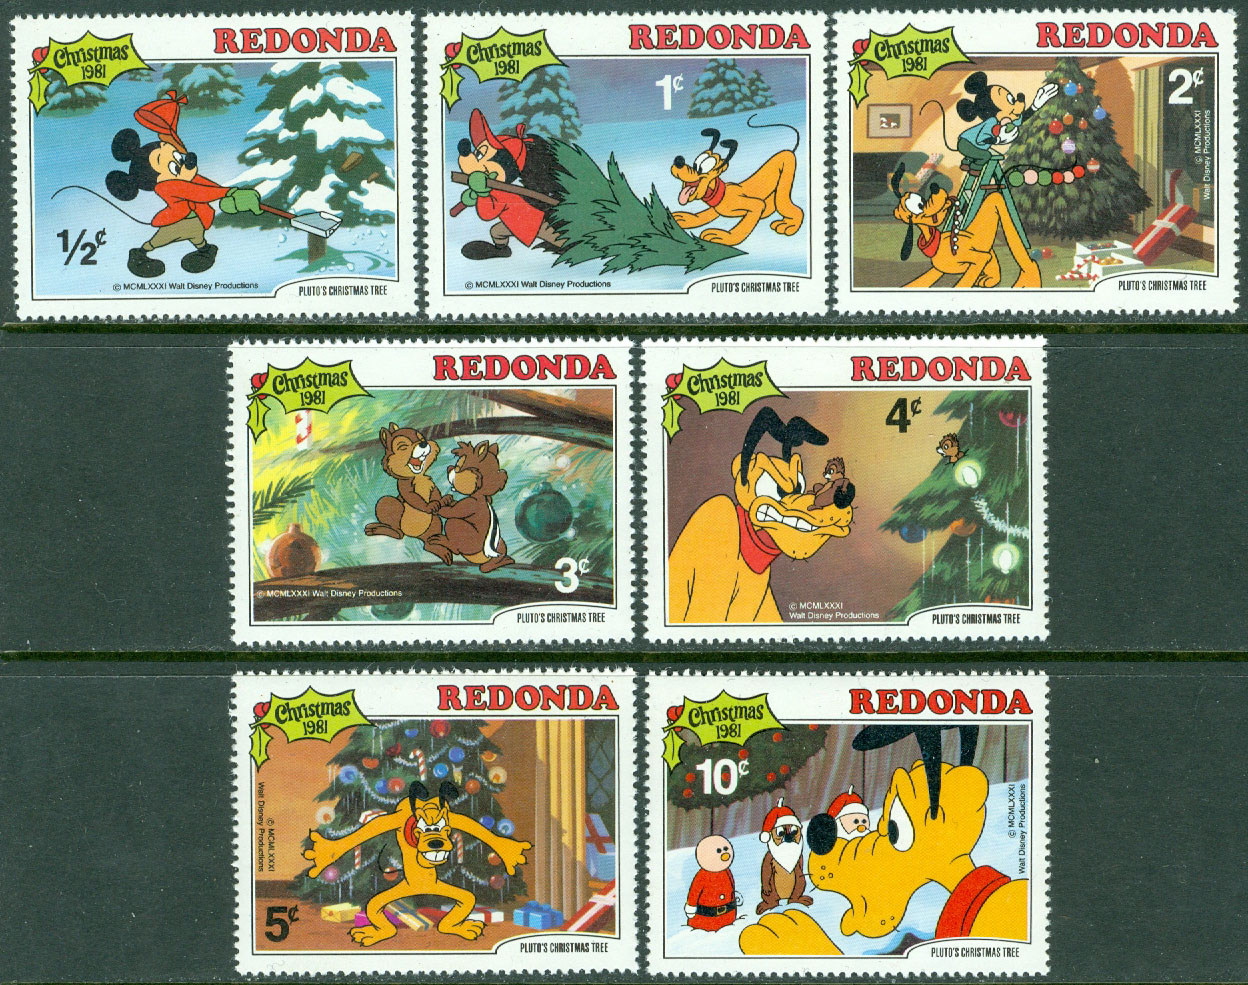 Redonda - M   81-87 Disney, Plutos jul 1981, 7 ol**